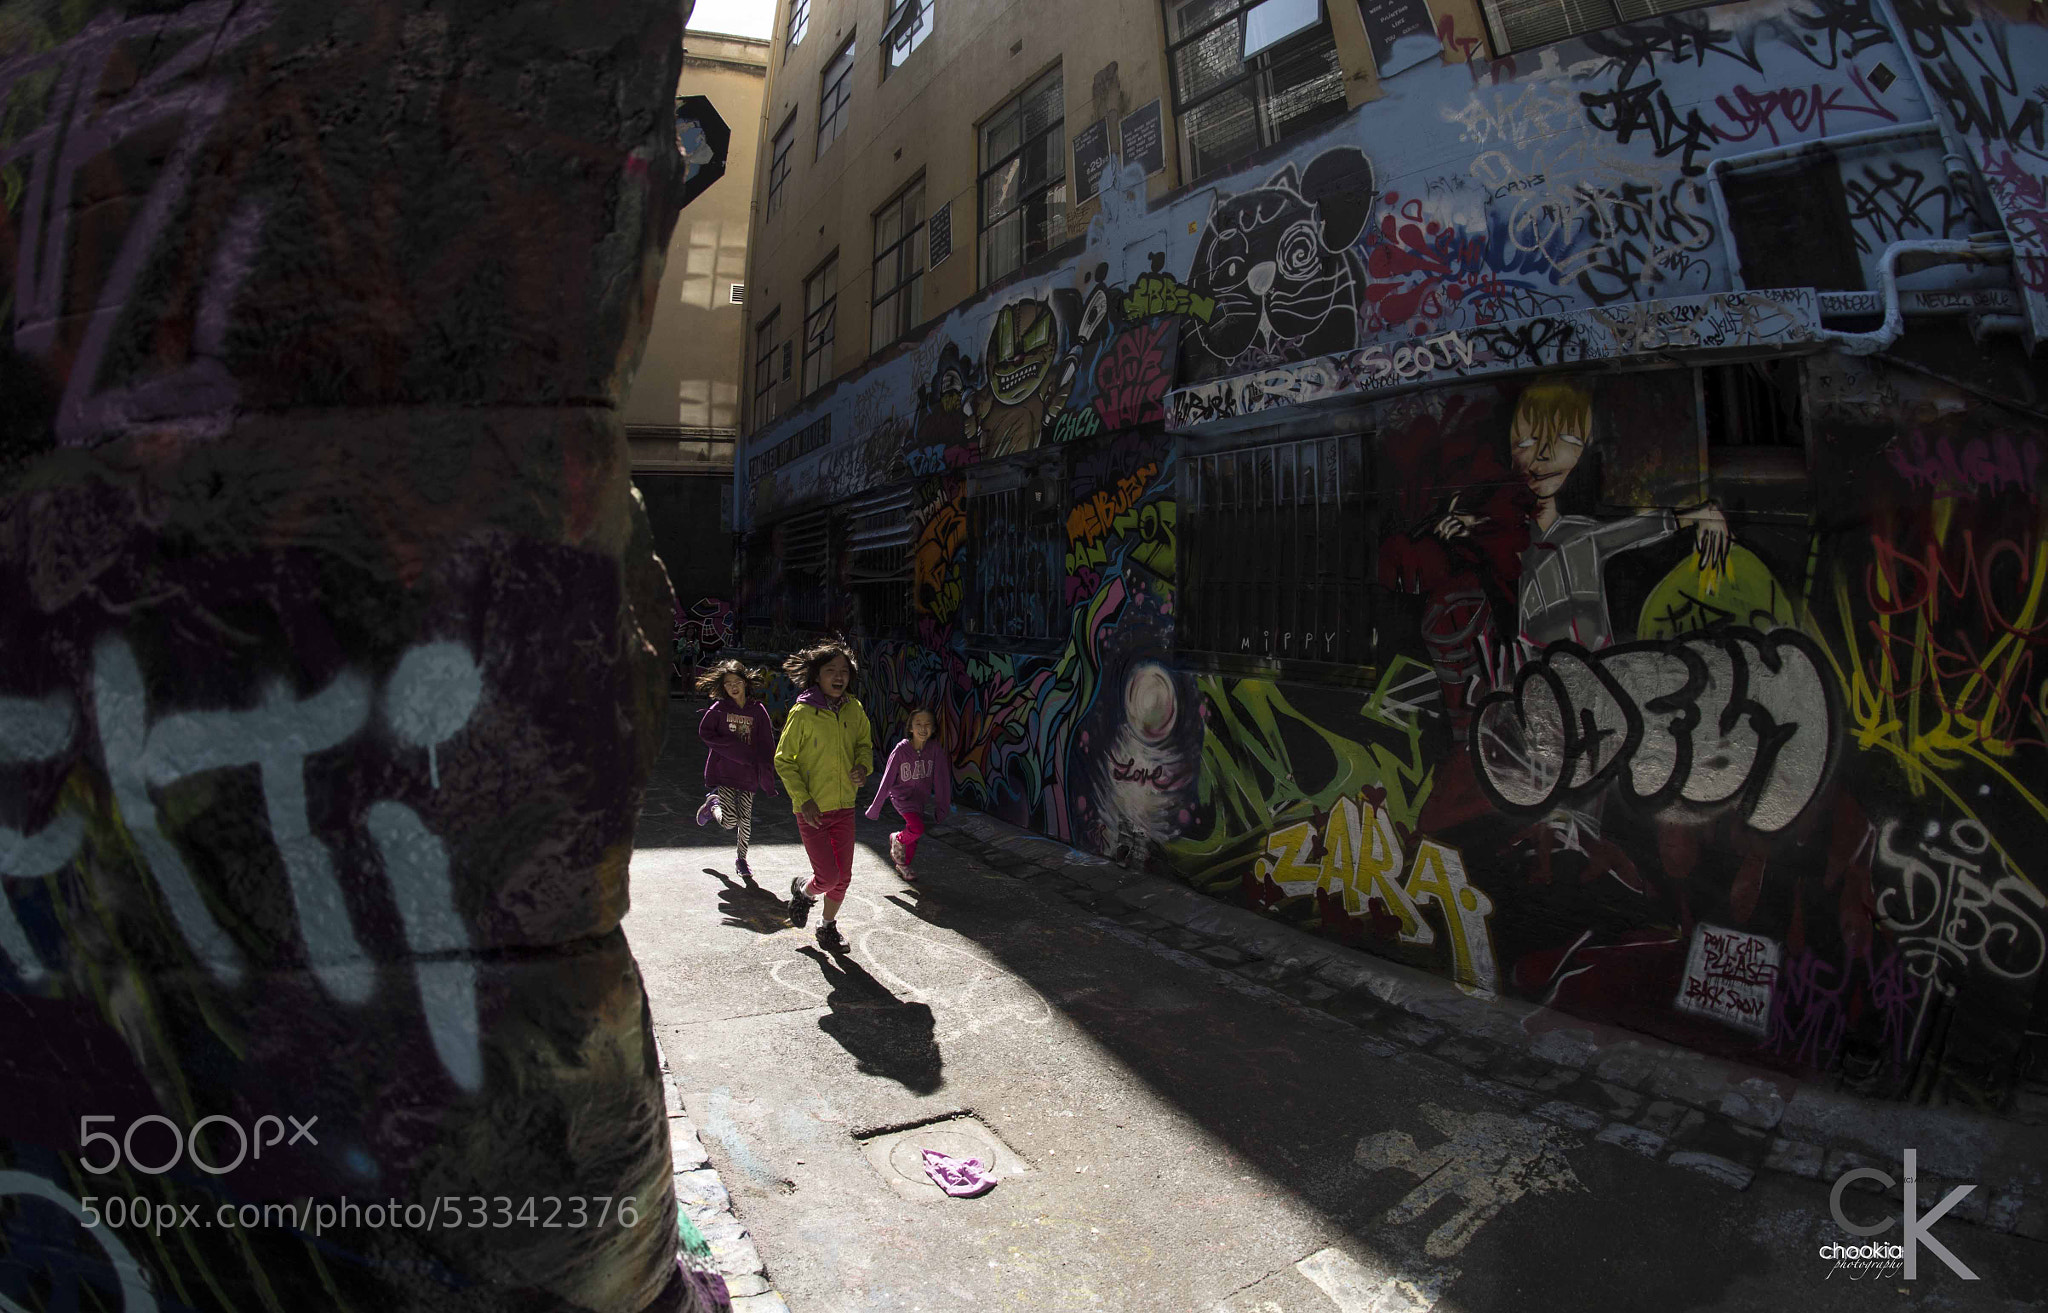 Photograph Hosier lane @ Australia by CK NG on 500px